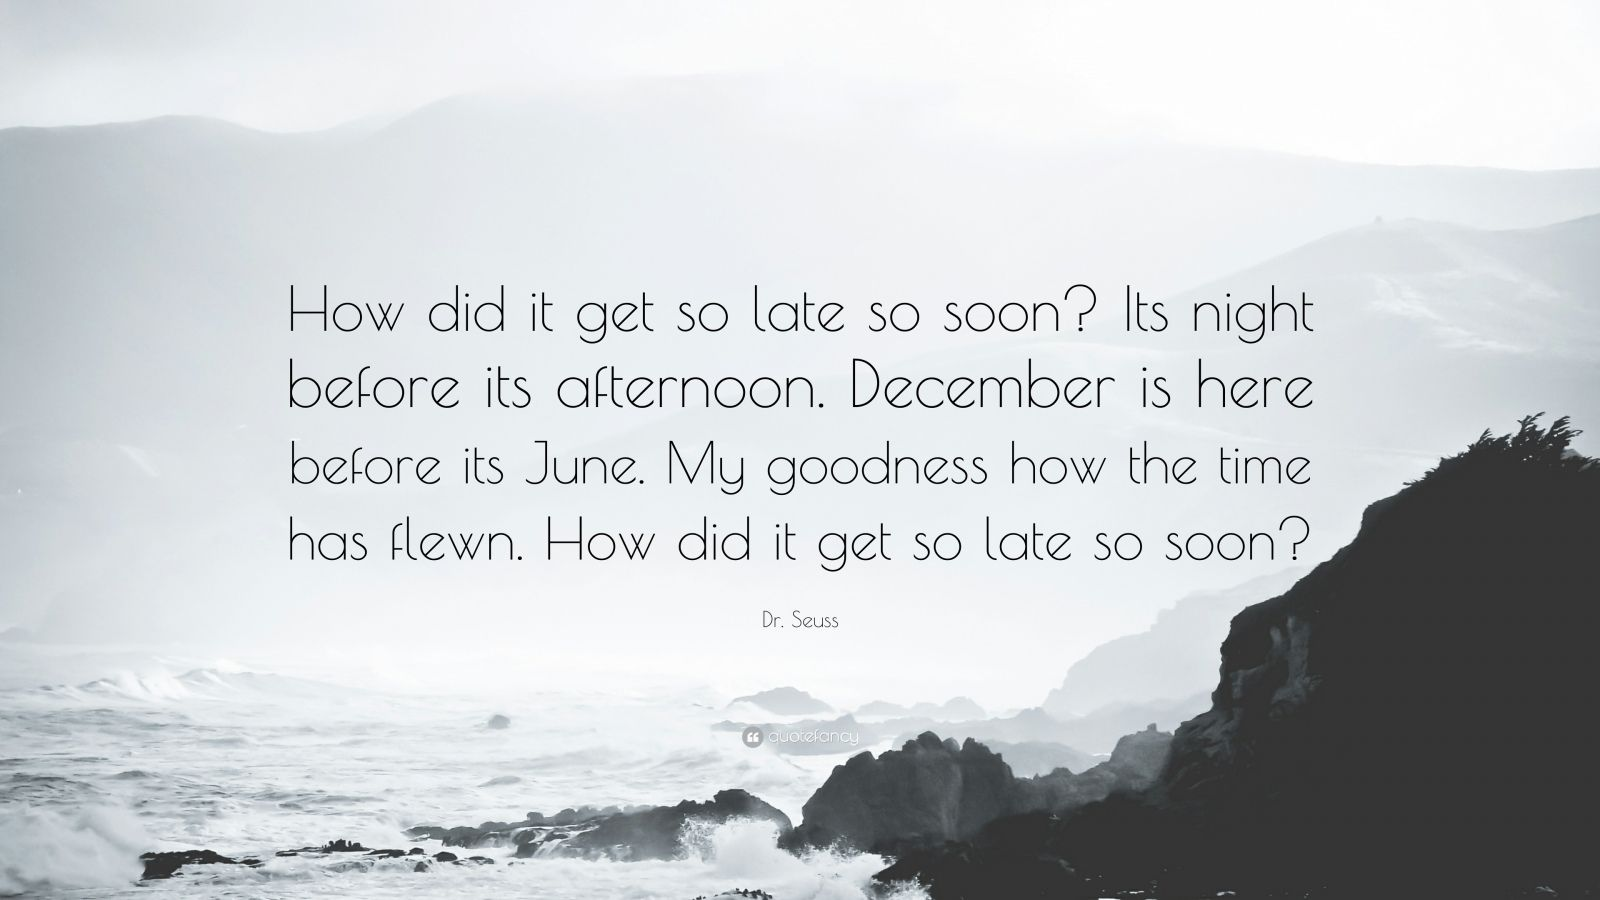 """Dr. Seuss Quote: """"How did it get so late so soon? Its night before its afternoon. December is here before its June. My goodness how the time has flewn. How did it get so late so soon?"""""""